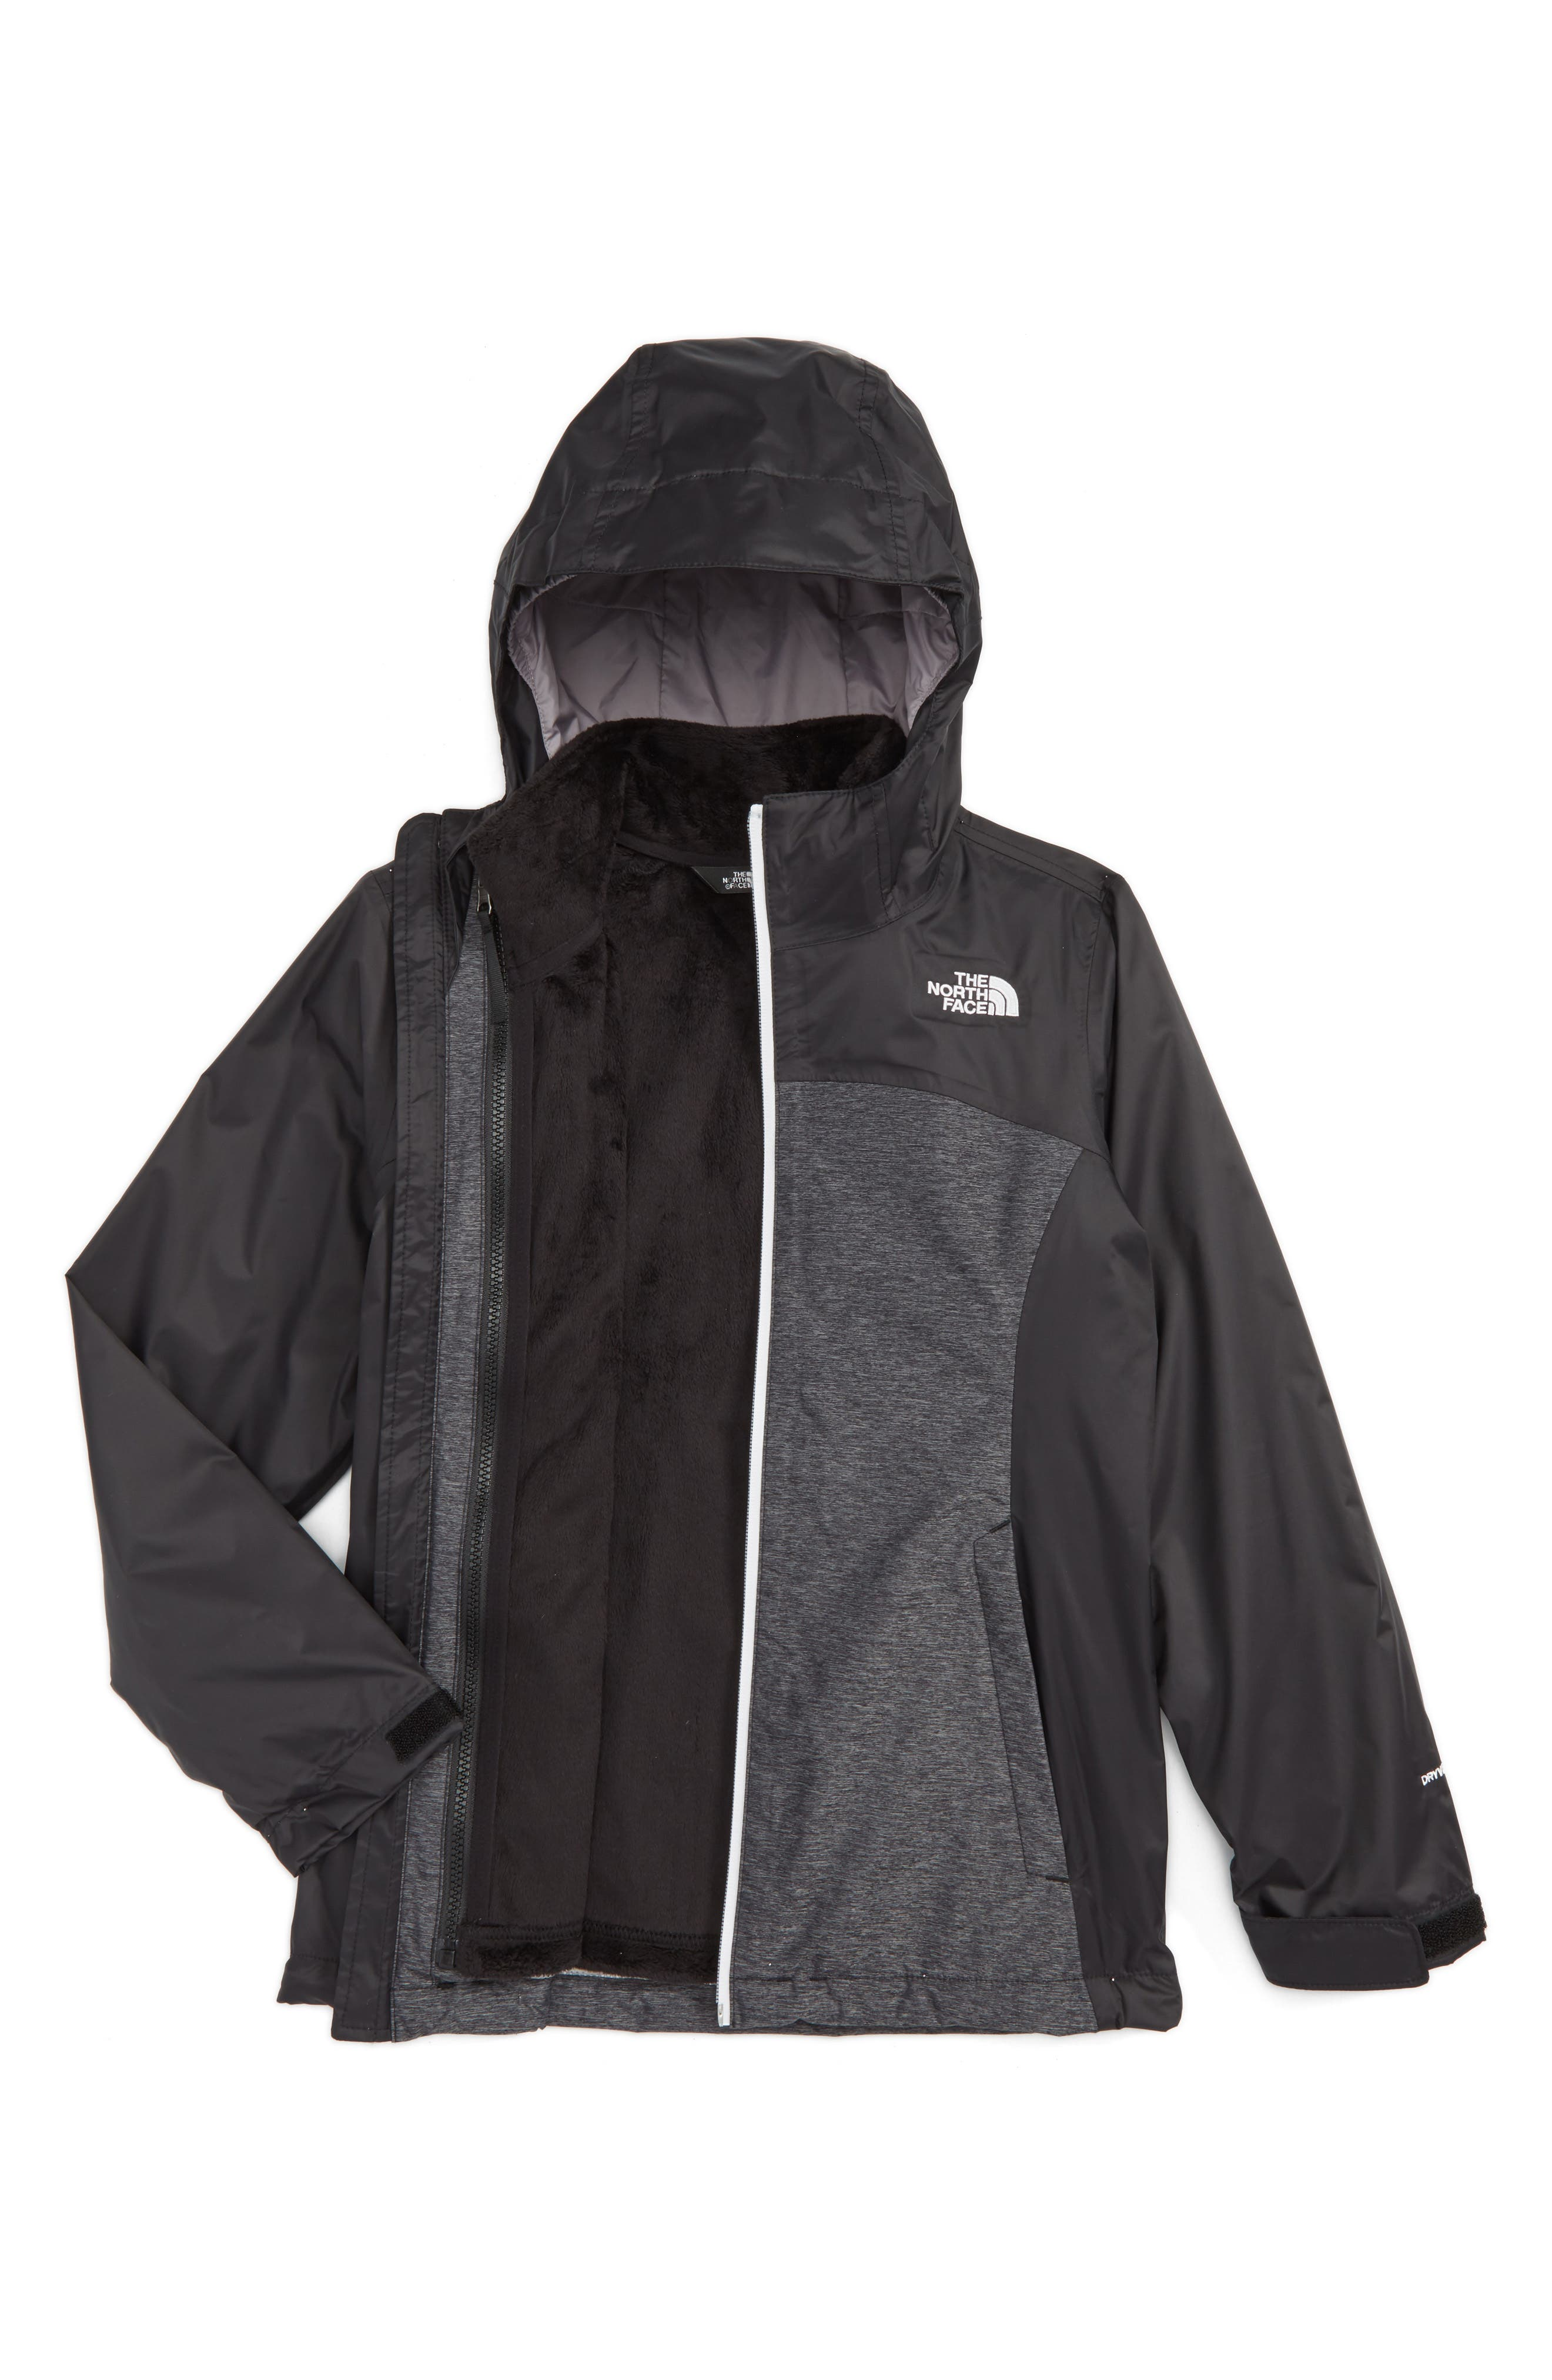 Osolita TriClimate<sup>®</sup> Waterproof 3-in-1 Jacket,                             Main thumbnail 1, color,                             Tnf Black